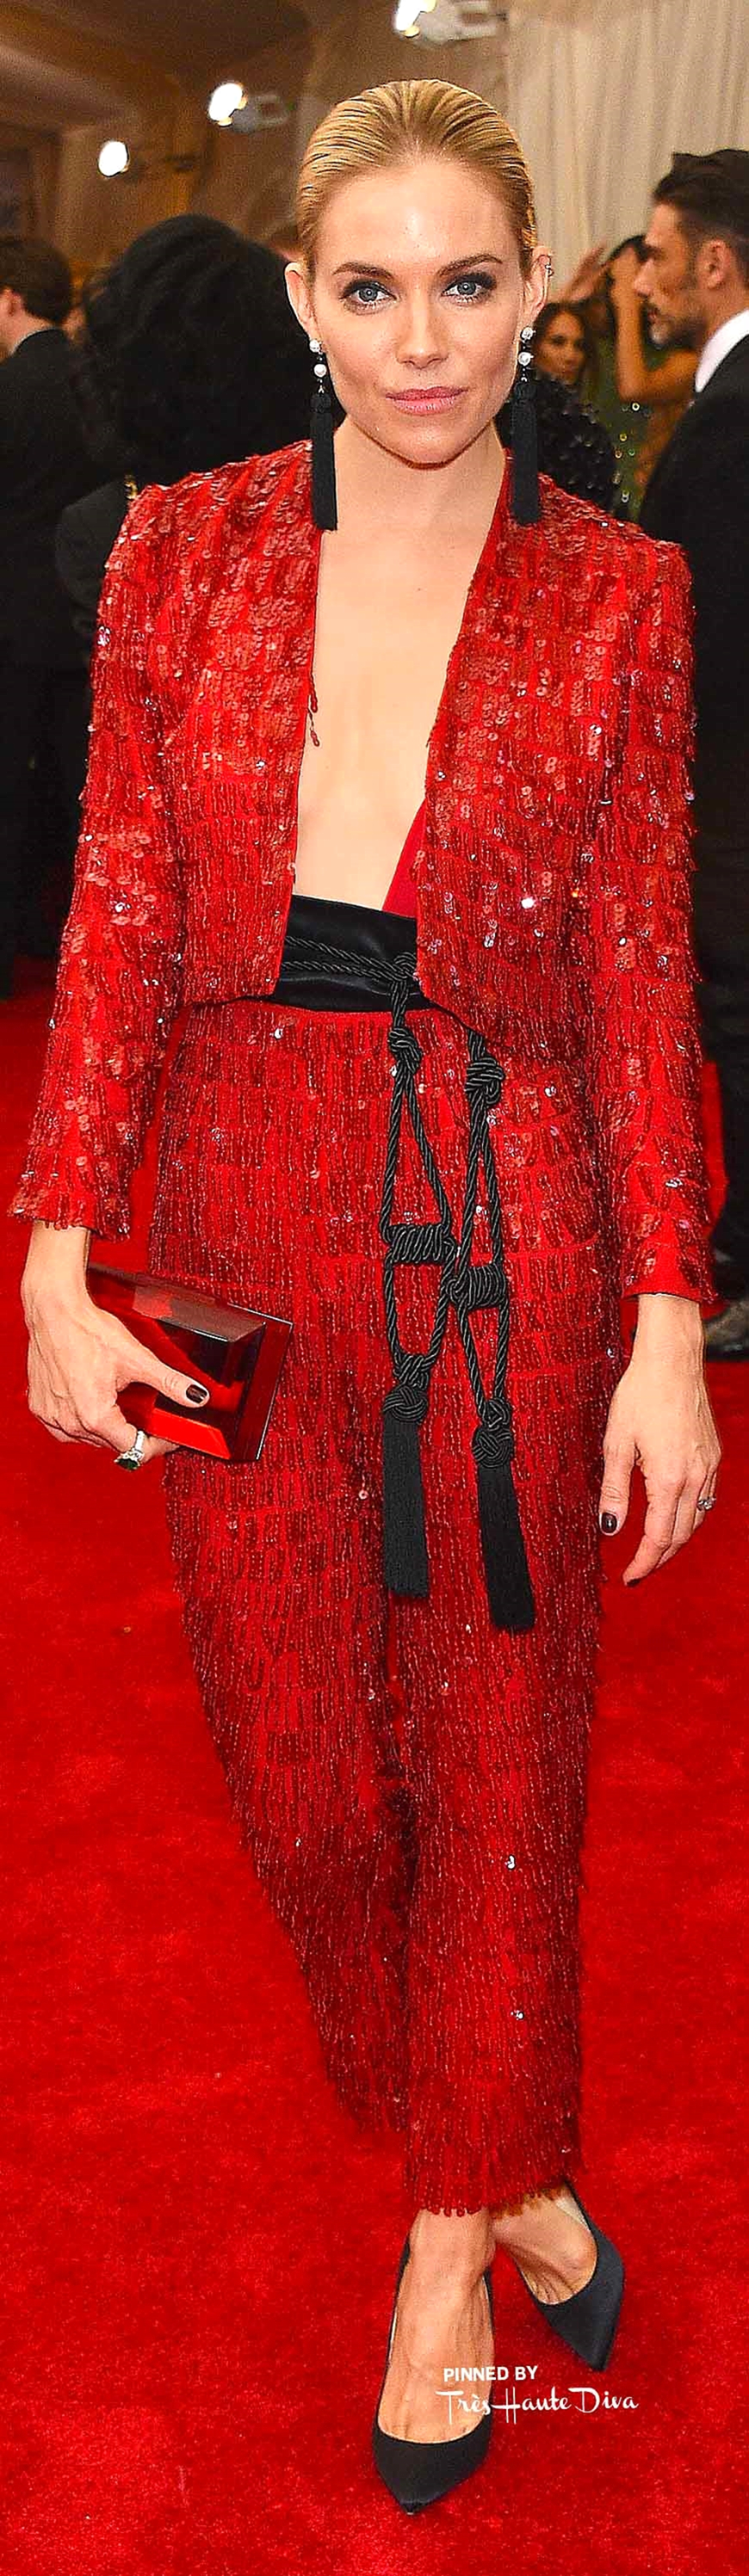 Sienna Miller in Thakoon Getty Images/ Larry Busacca